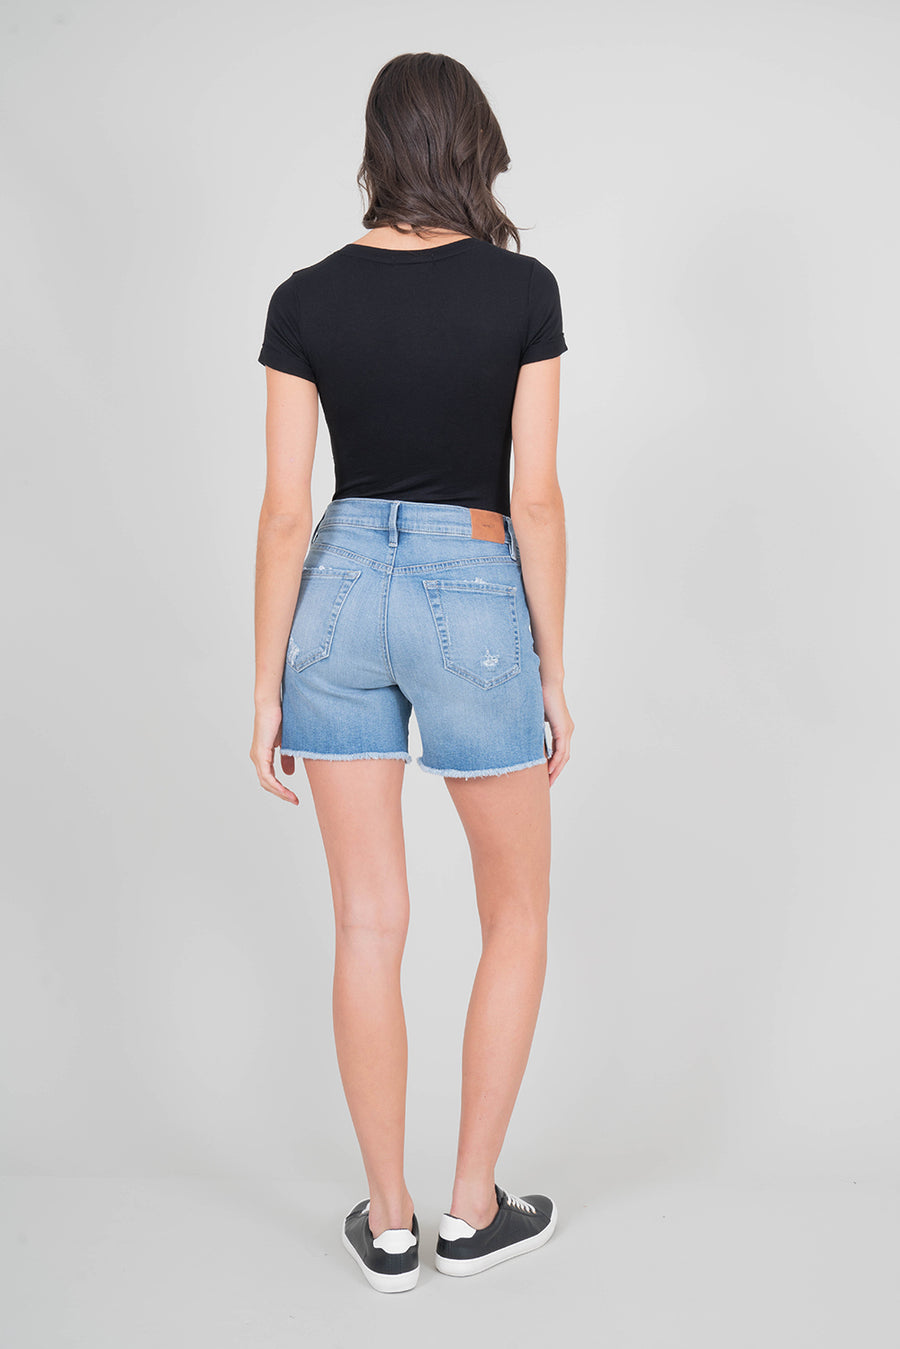 Morgan Button Fly Short - level99jeans